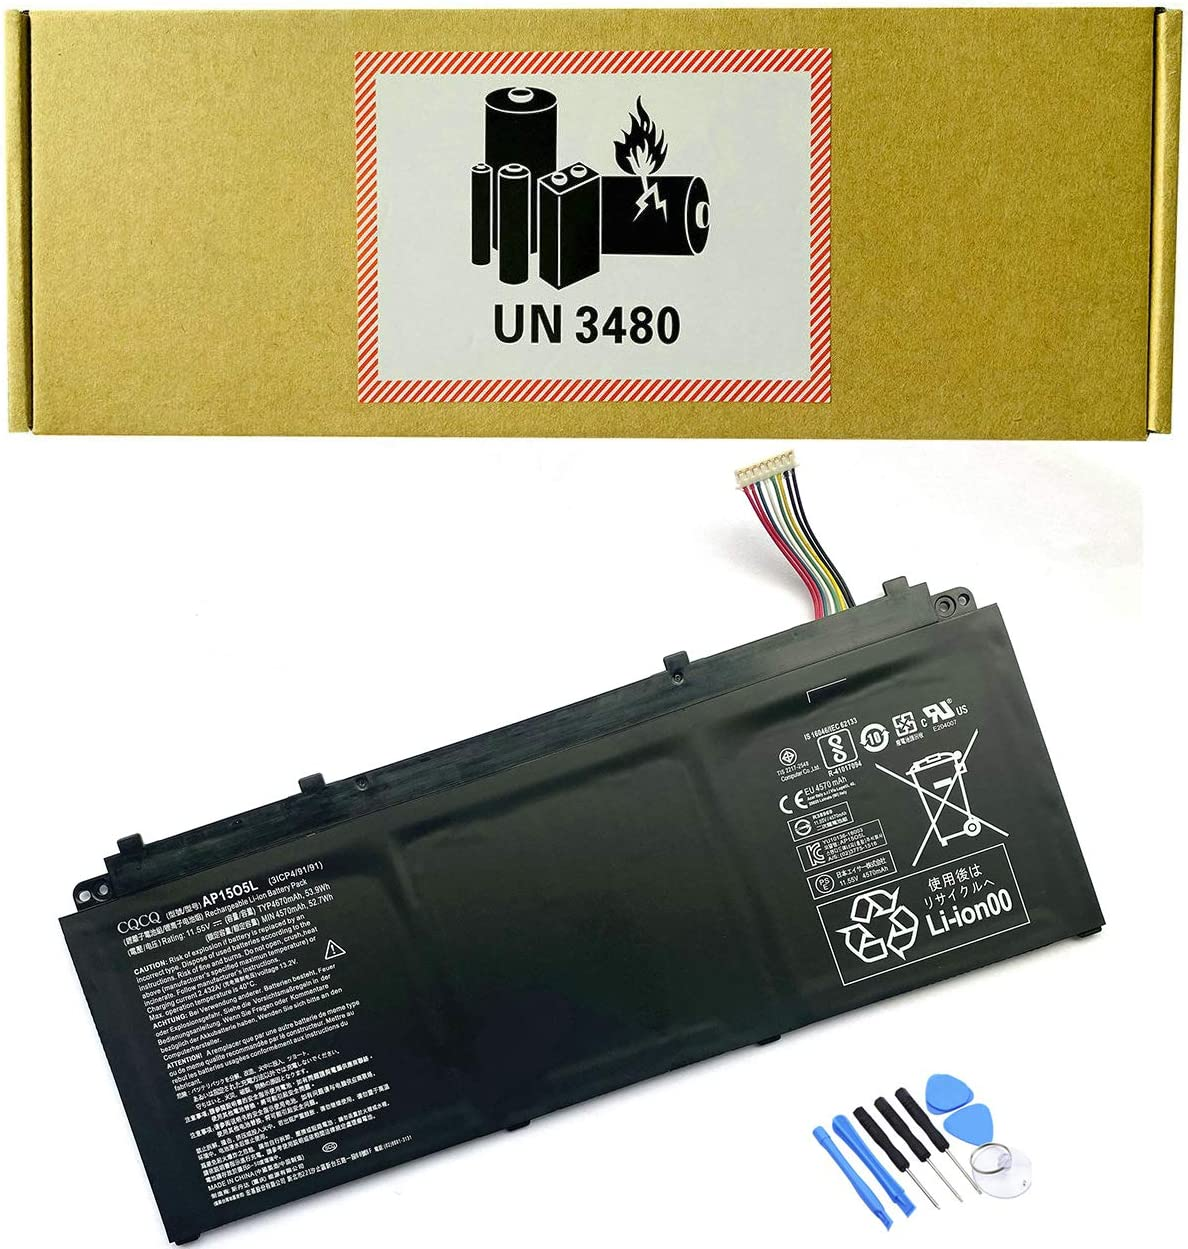 CQCQ AP15O5L Compatible Battery Replacement for Acer Aspire S13 S5-371 S5-371-56VE AP1503K AP15O3K S5-371-52JR S5-371-7278 767P S5-371T-58CC Series Laptop (11.55V 53.9Wh/4670mAh)